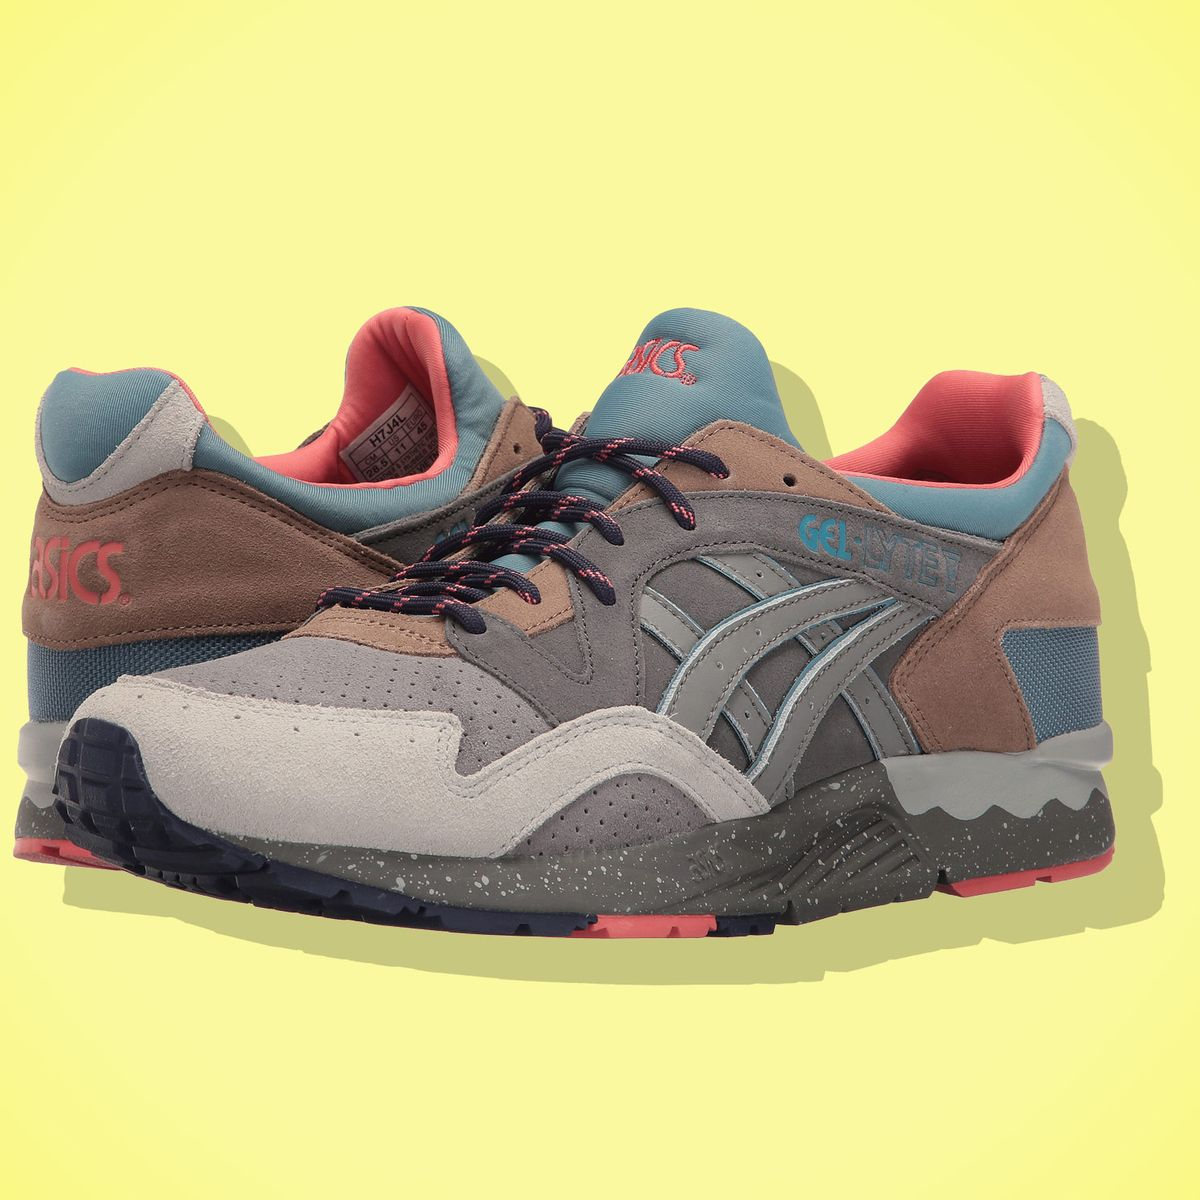 new style b7d1d 7ec8b The Most Comfortable Sneakers Are Asics Gel Lyte 2017